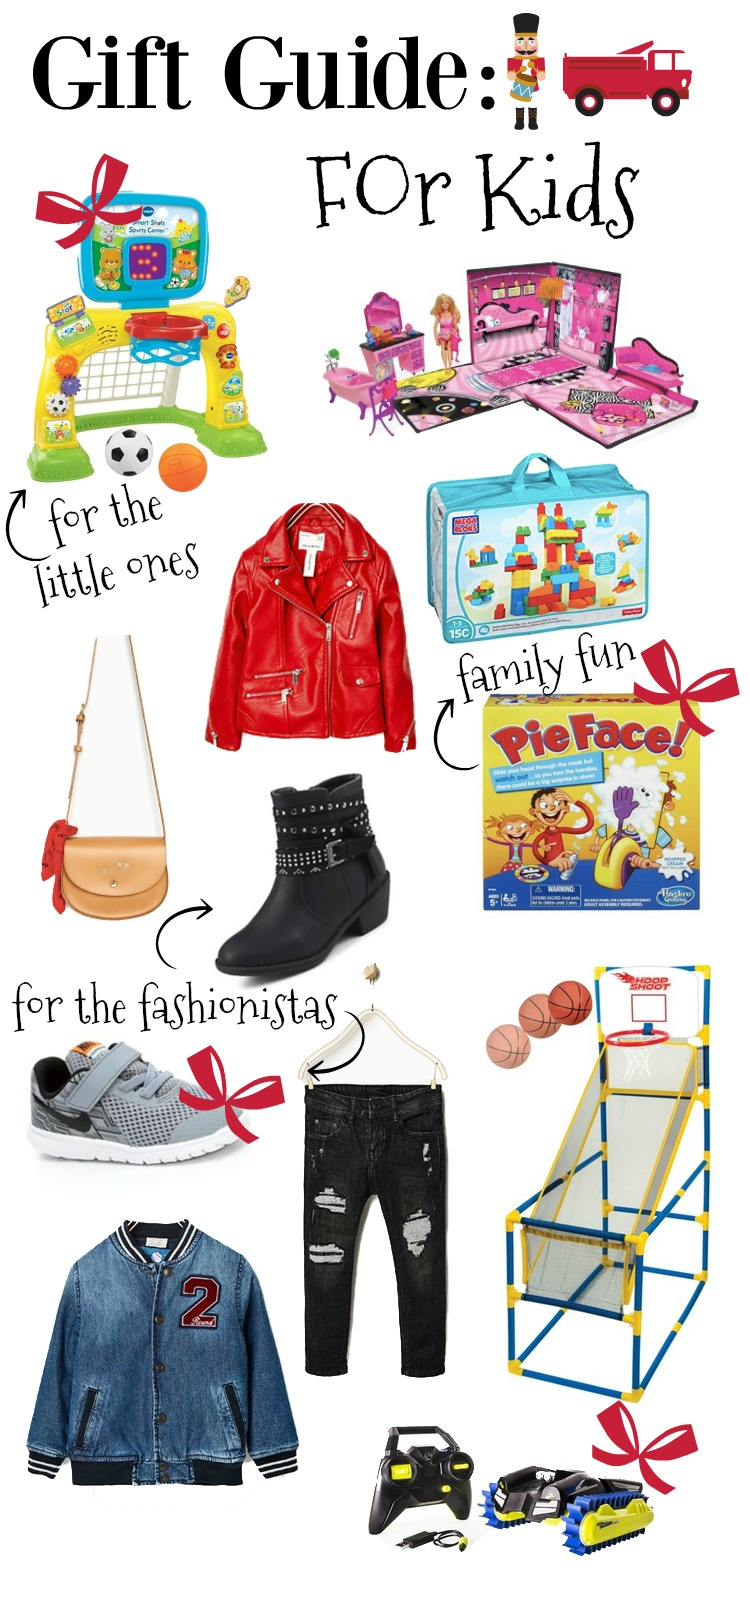 Holiday gift ideas | Gift idea for kids | Gift guide for the kids | Uptown with Elly Brown -  Holiday Gift Guide For the Kids by Houston mom blogger Uptown with Elly Brown